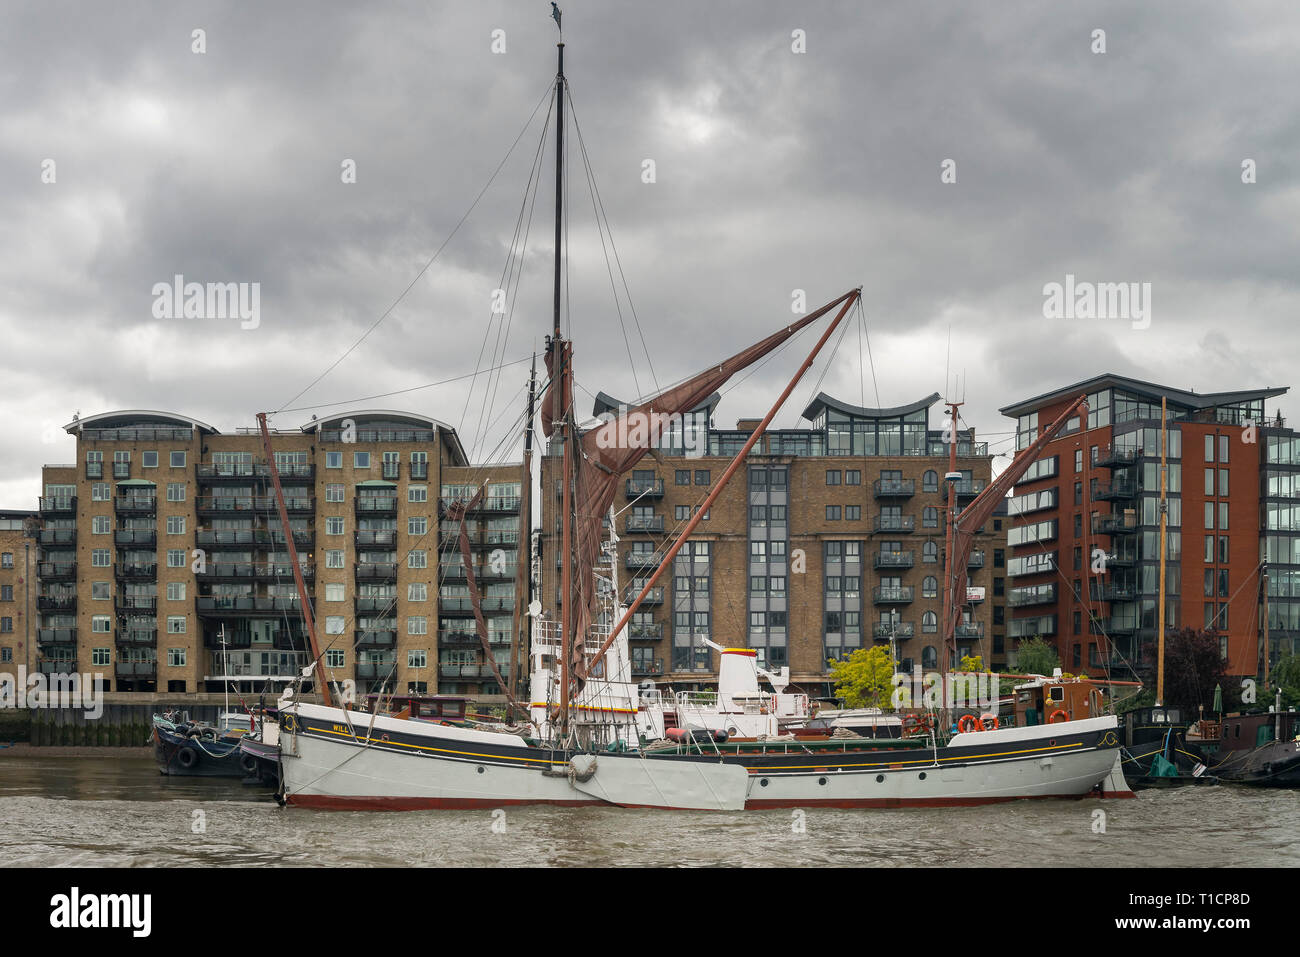 WILL the Historic Barge moored on the Thames - Stock Image